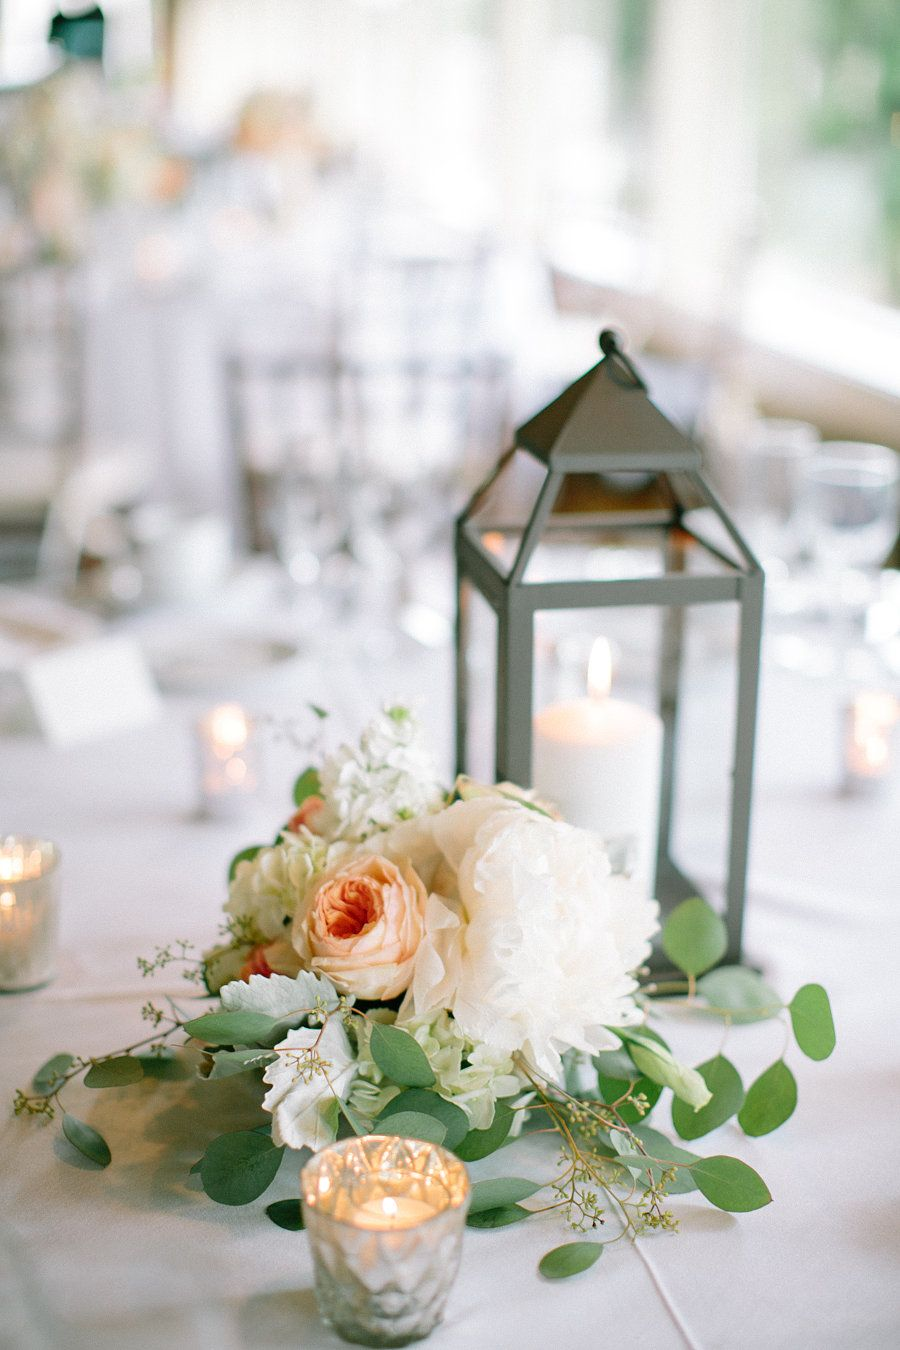 Lantern Centerpiece with Candle | Pinterest | Lantern centerpieces ...